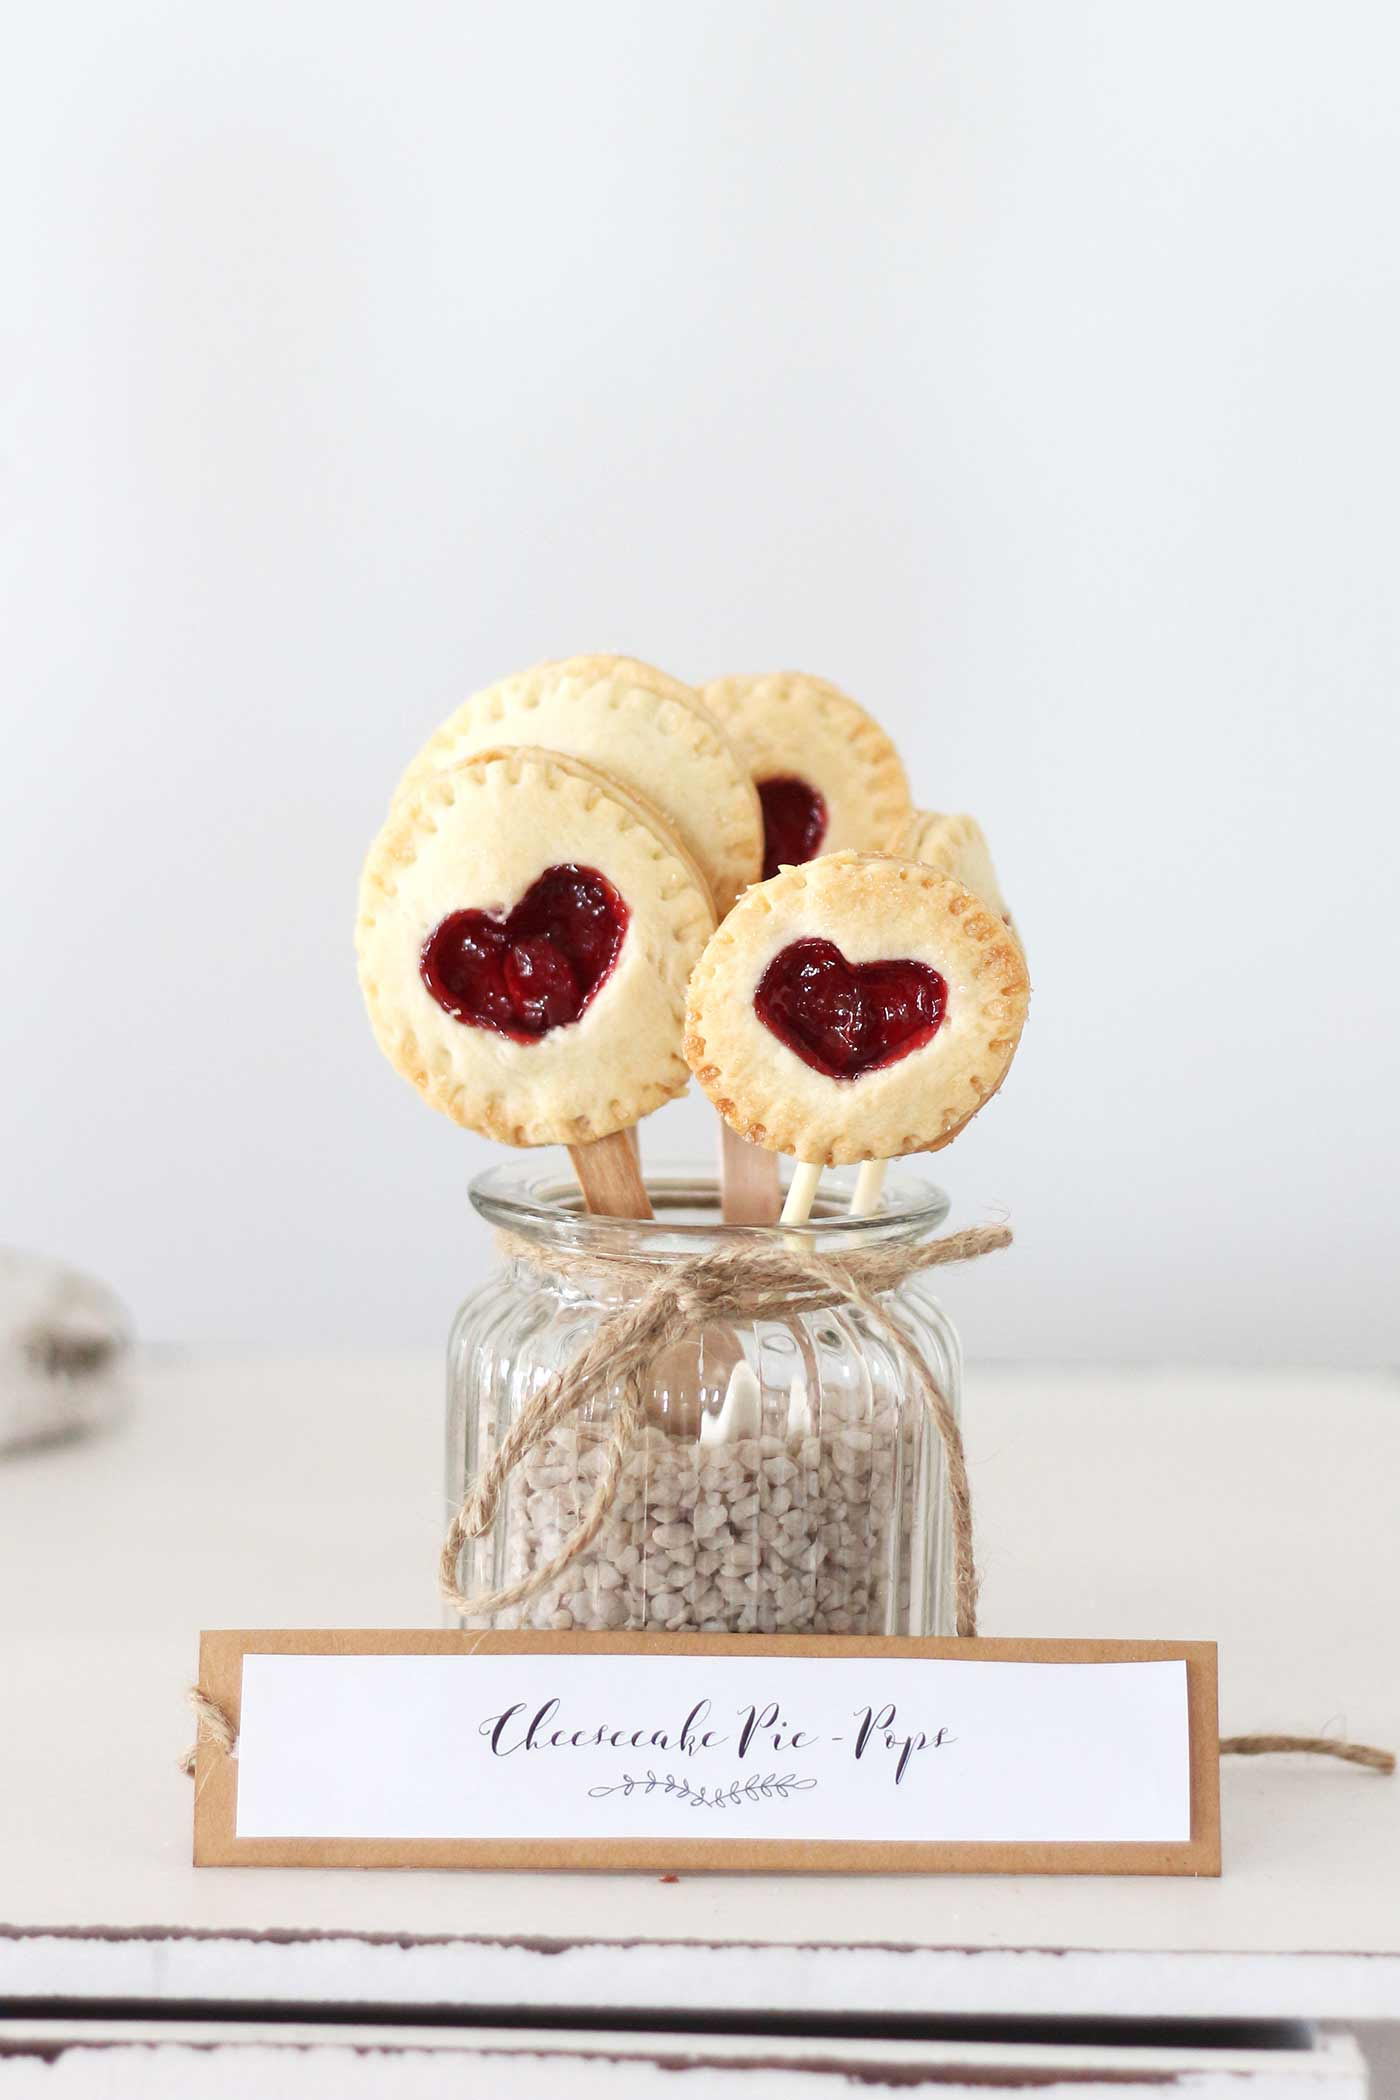 Cheesecake Pie-Pops